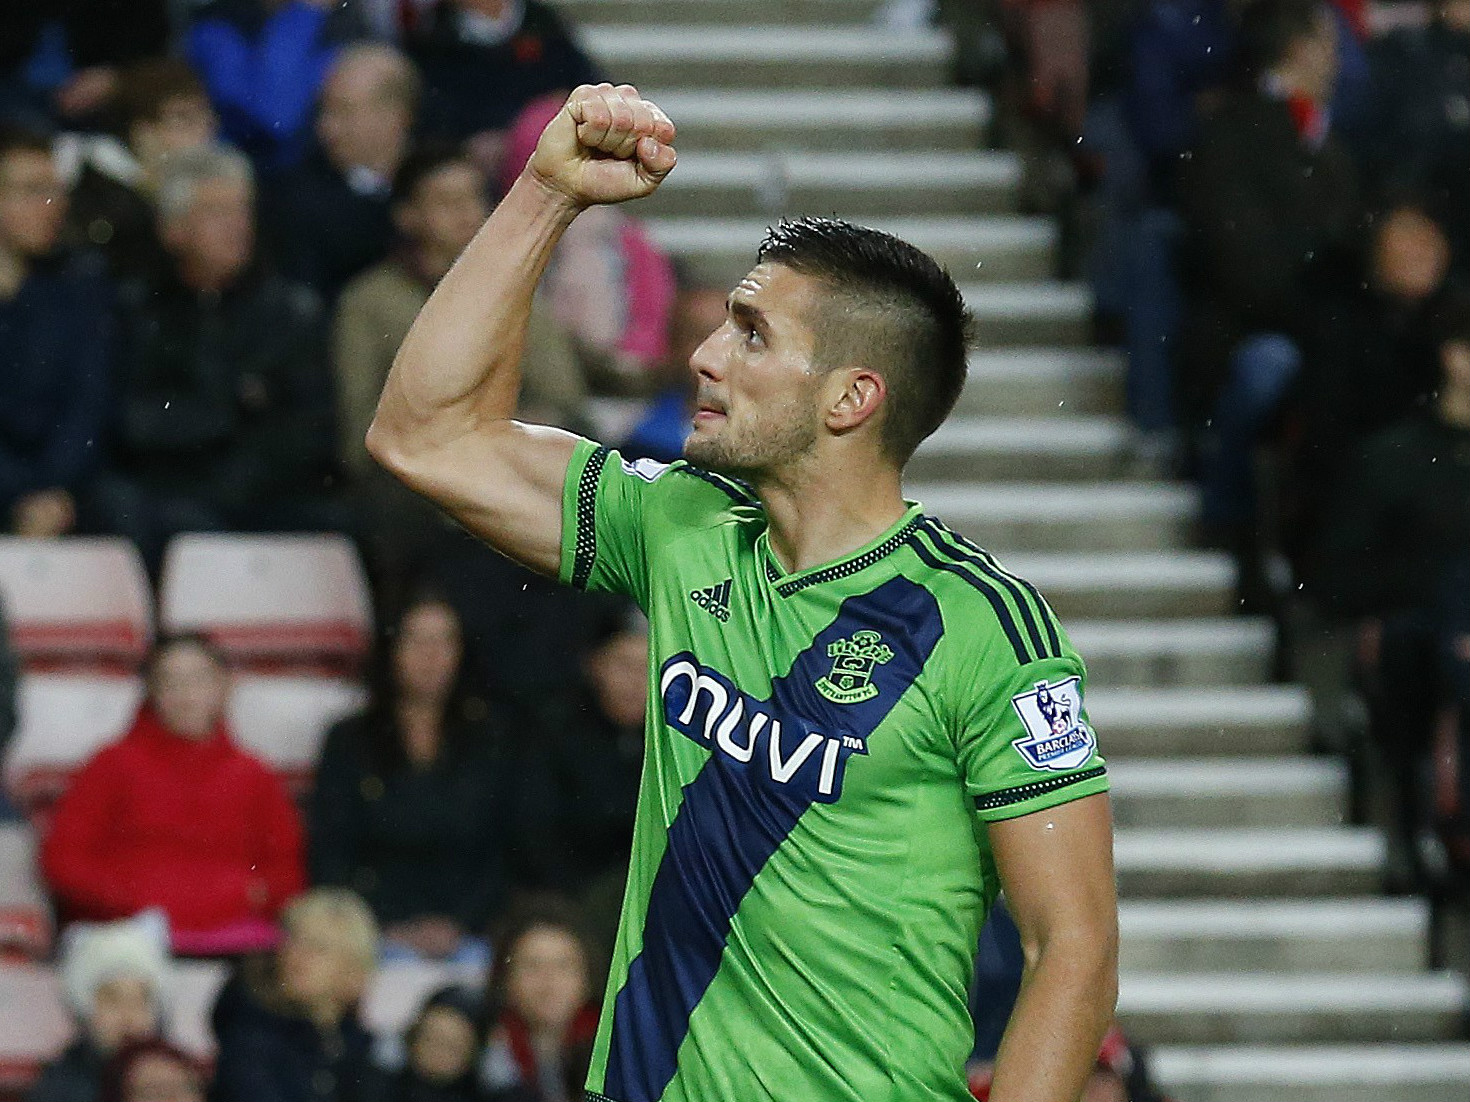 Southampton's Serbian midfielder Dusan Tadic celebrates after scoring the opening goal from the penalty spot during the English Premier League football match between Sunderland and Southampton at the Stadium of Light in Sunderland, north east England on N